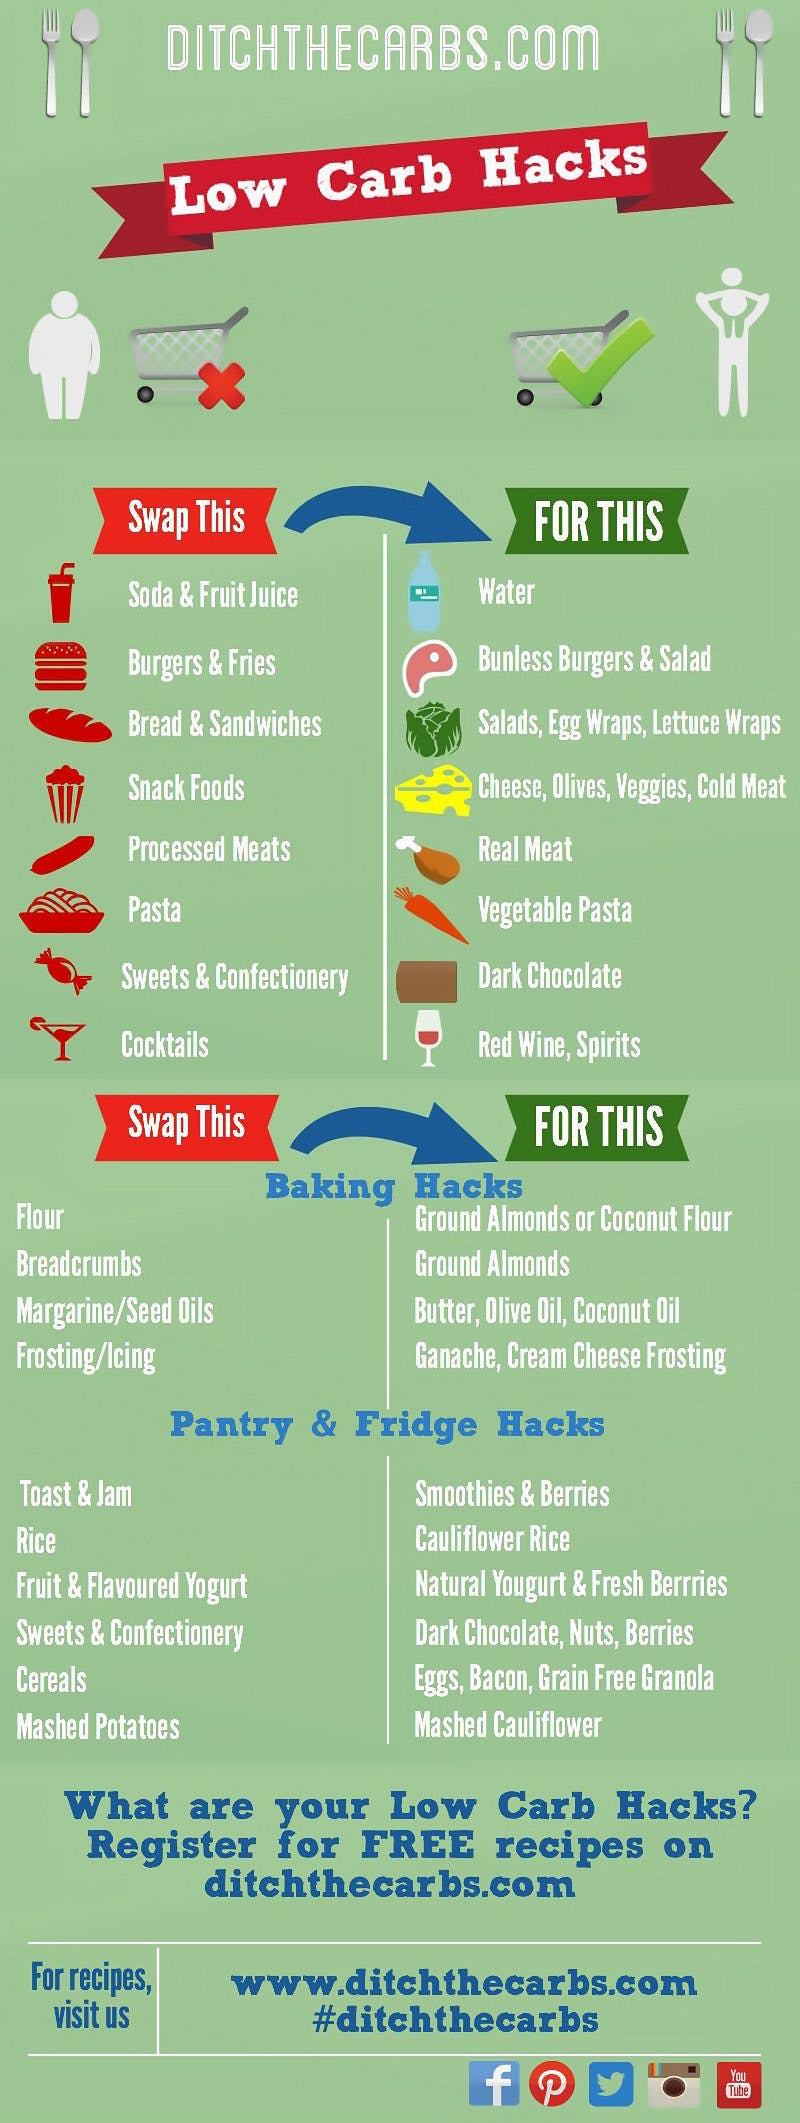 low-carb-hacks3